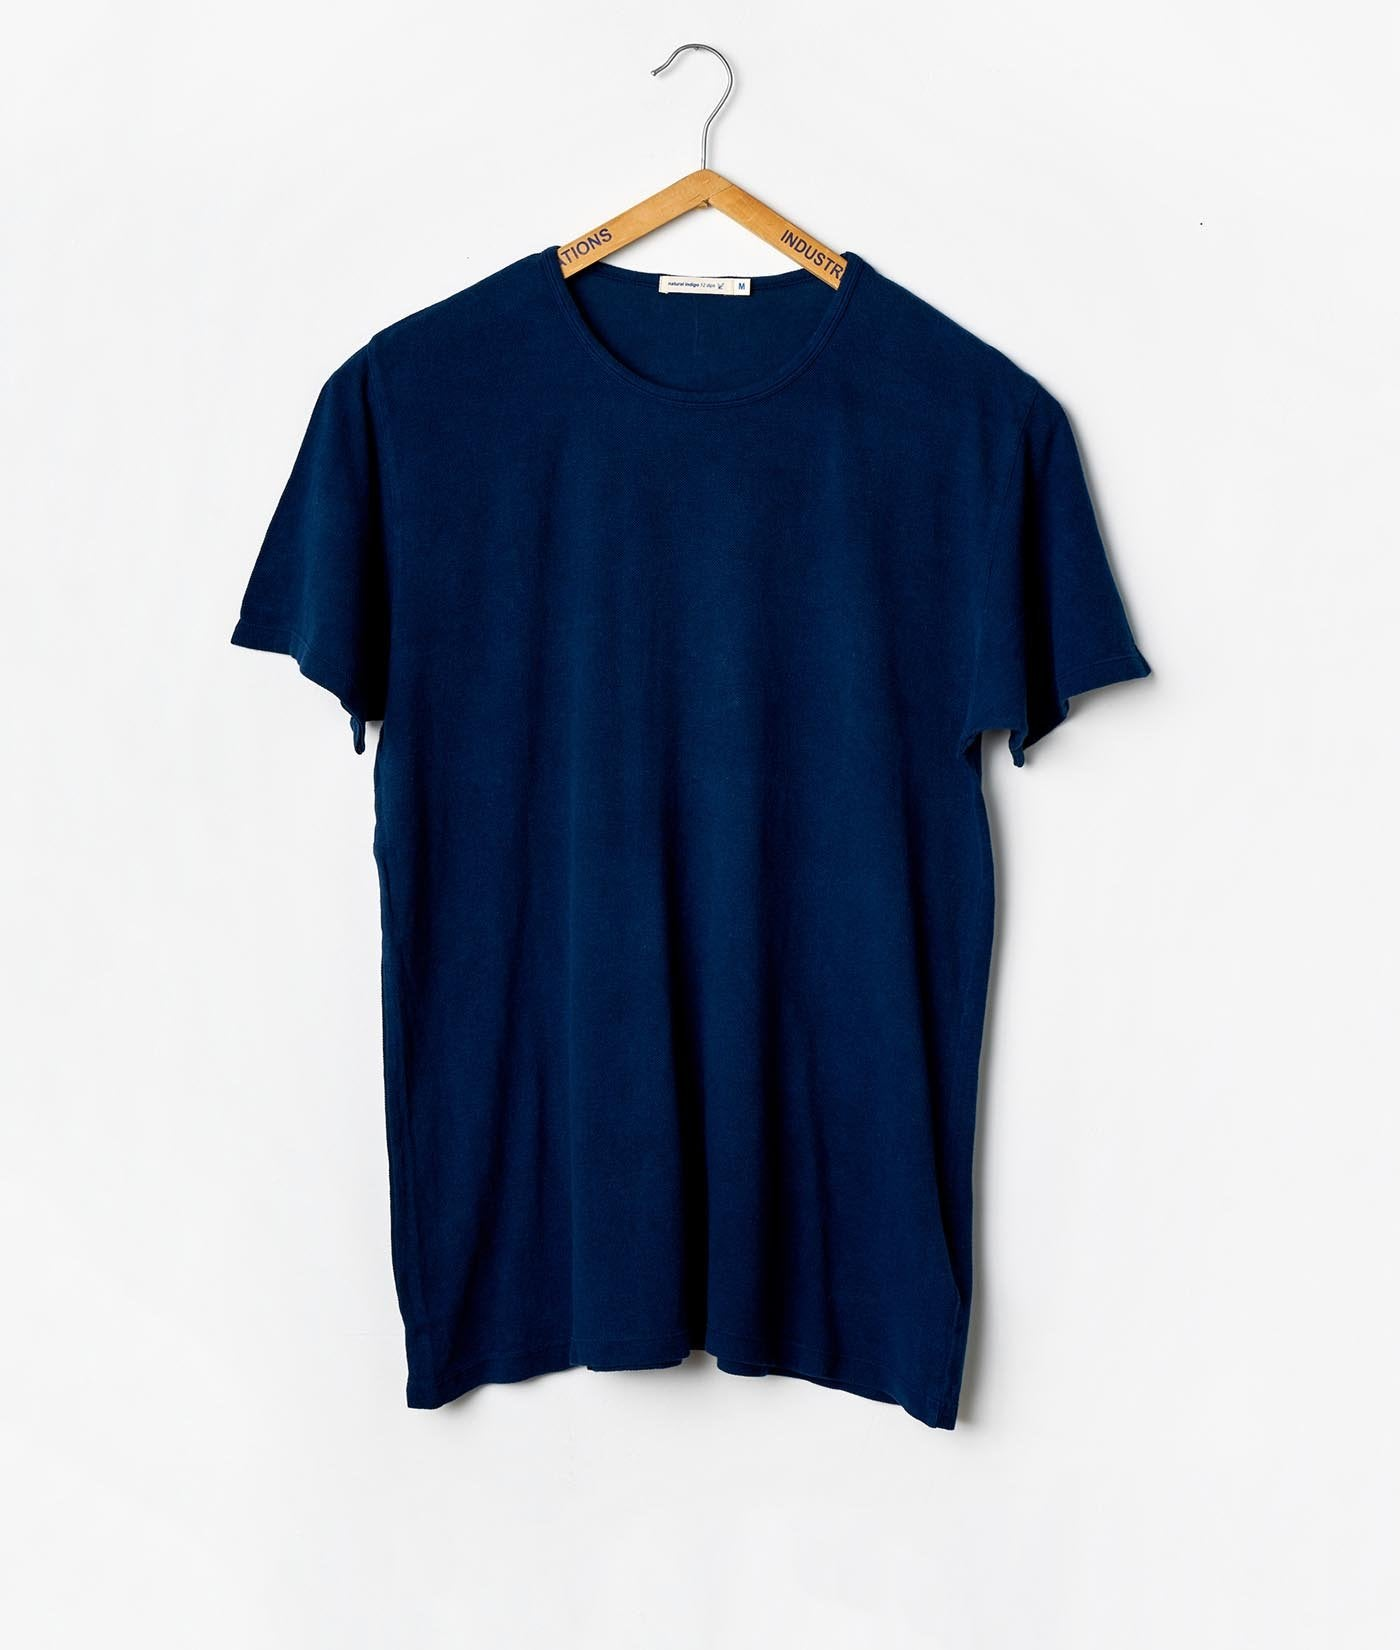 Industry of All Nations Pique Crew Neck T-Shirt Indigo 12